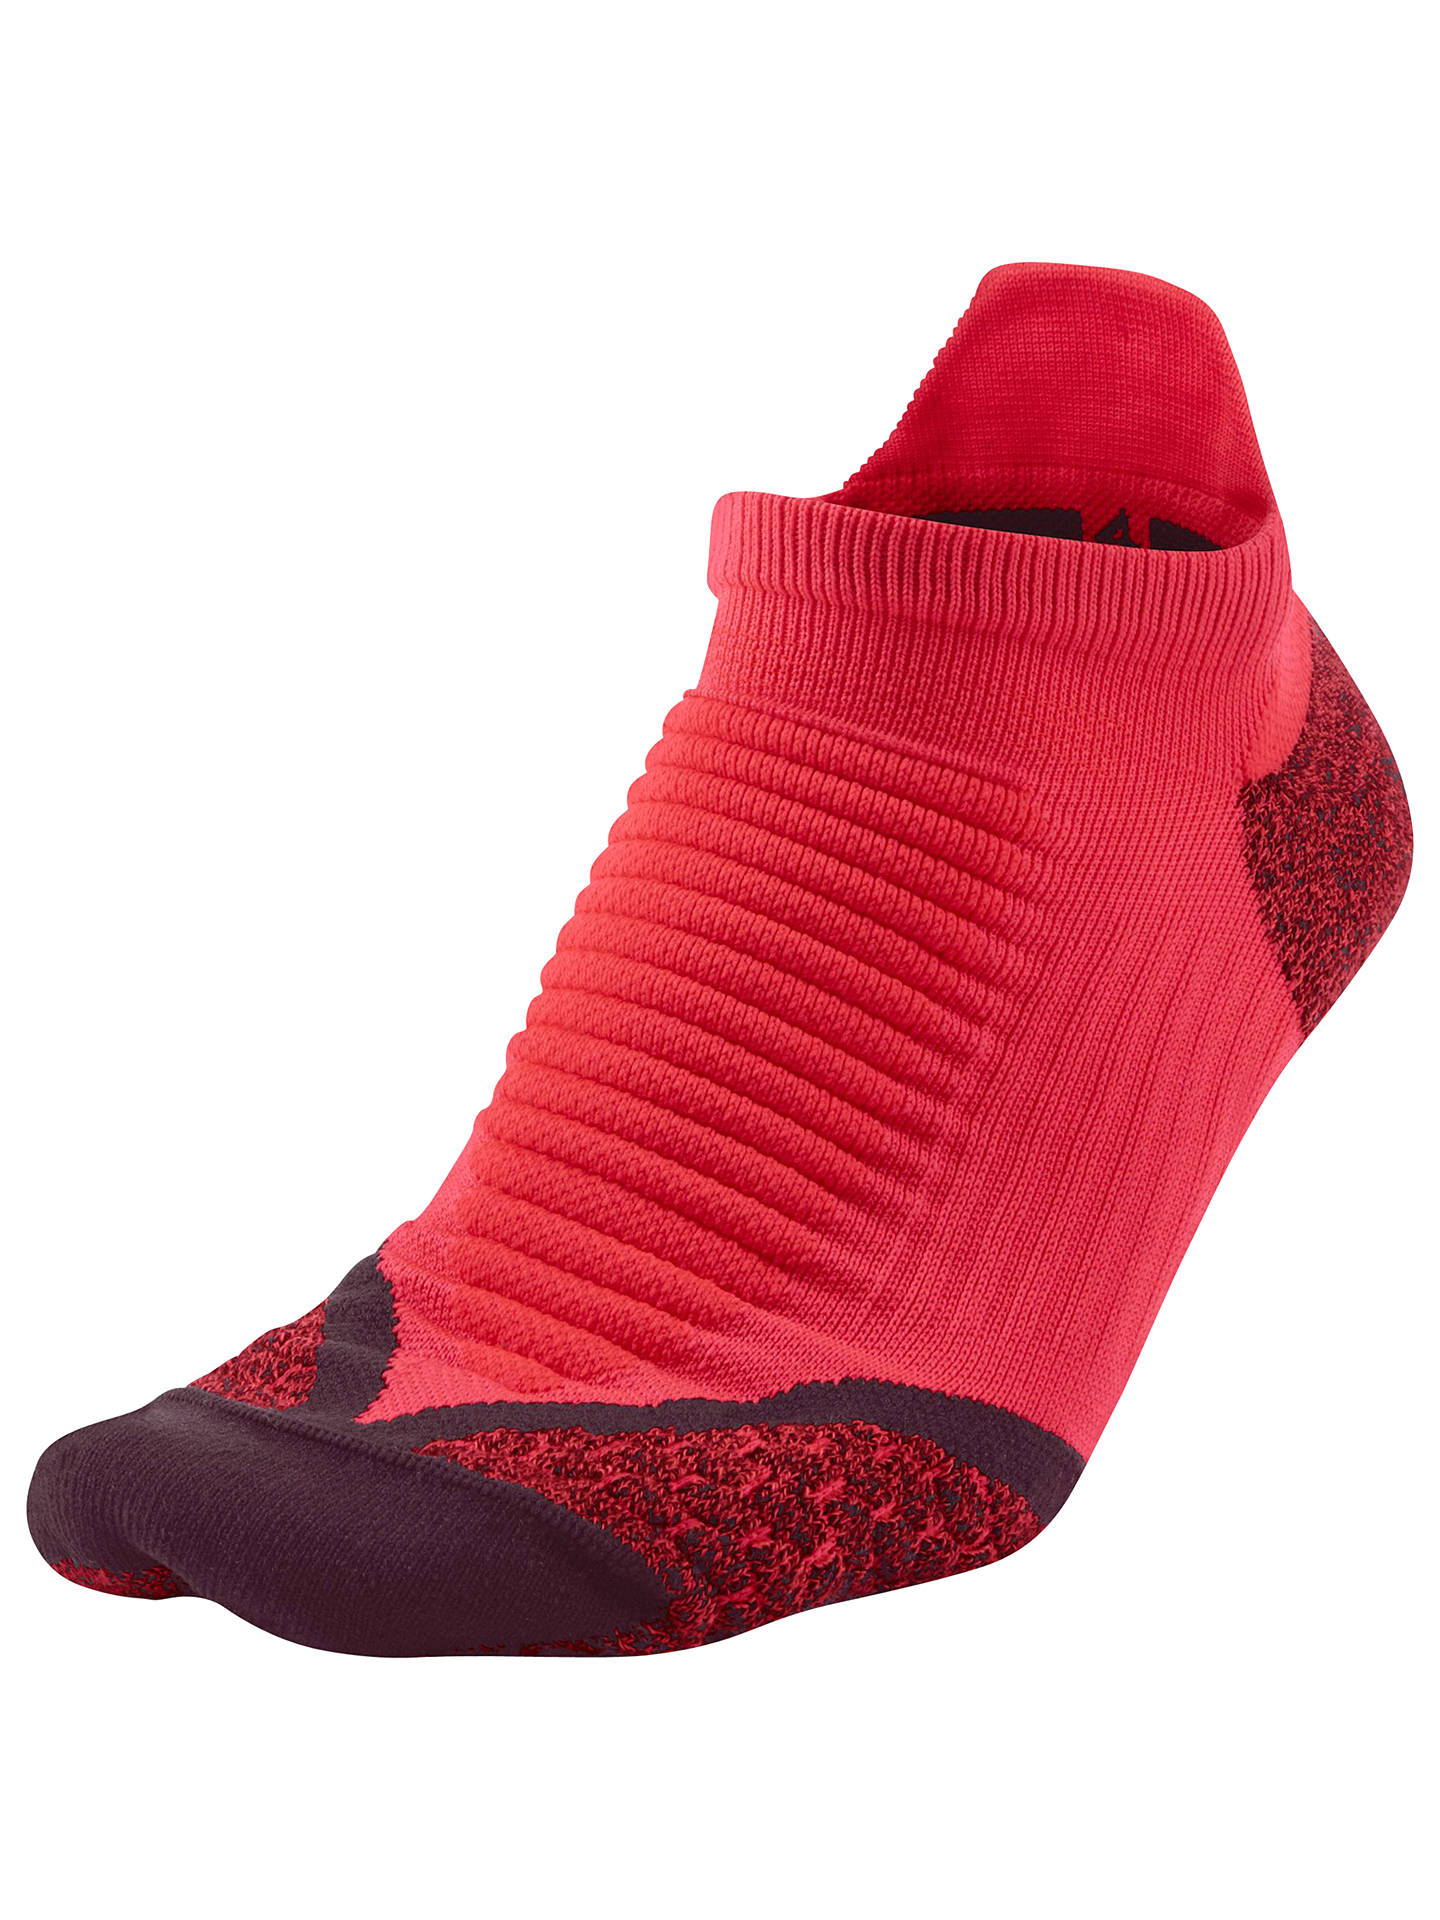 purchase cheap 416ff a2597 Buy Nike Elite Cushioned No-Show Tab Running Socks, Action Red Deep  Burgundy ...